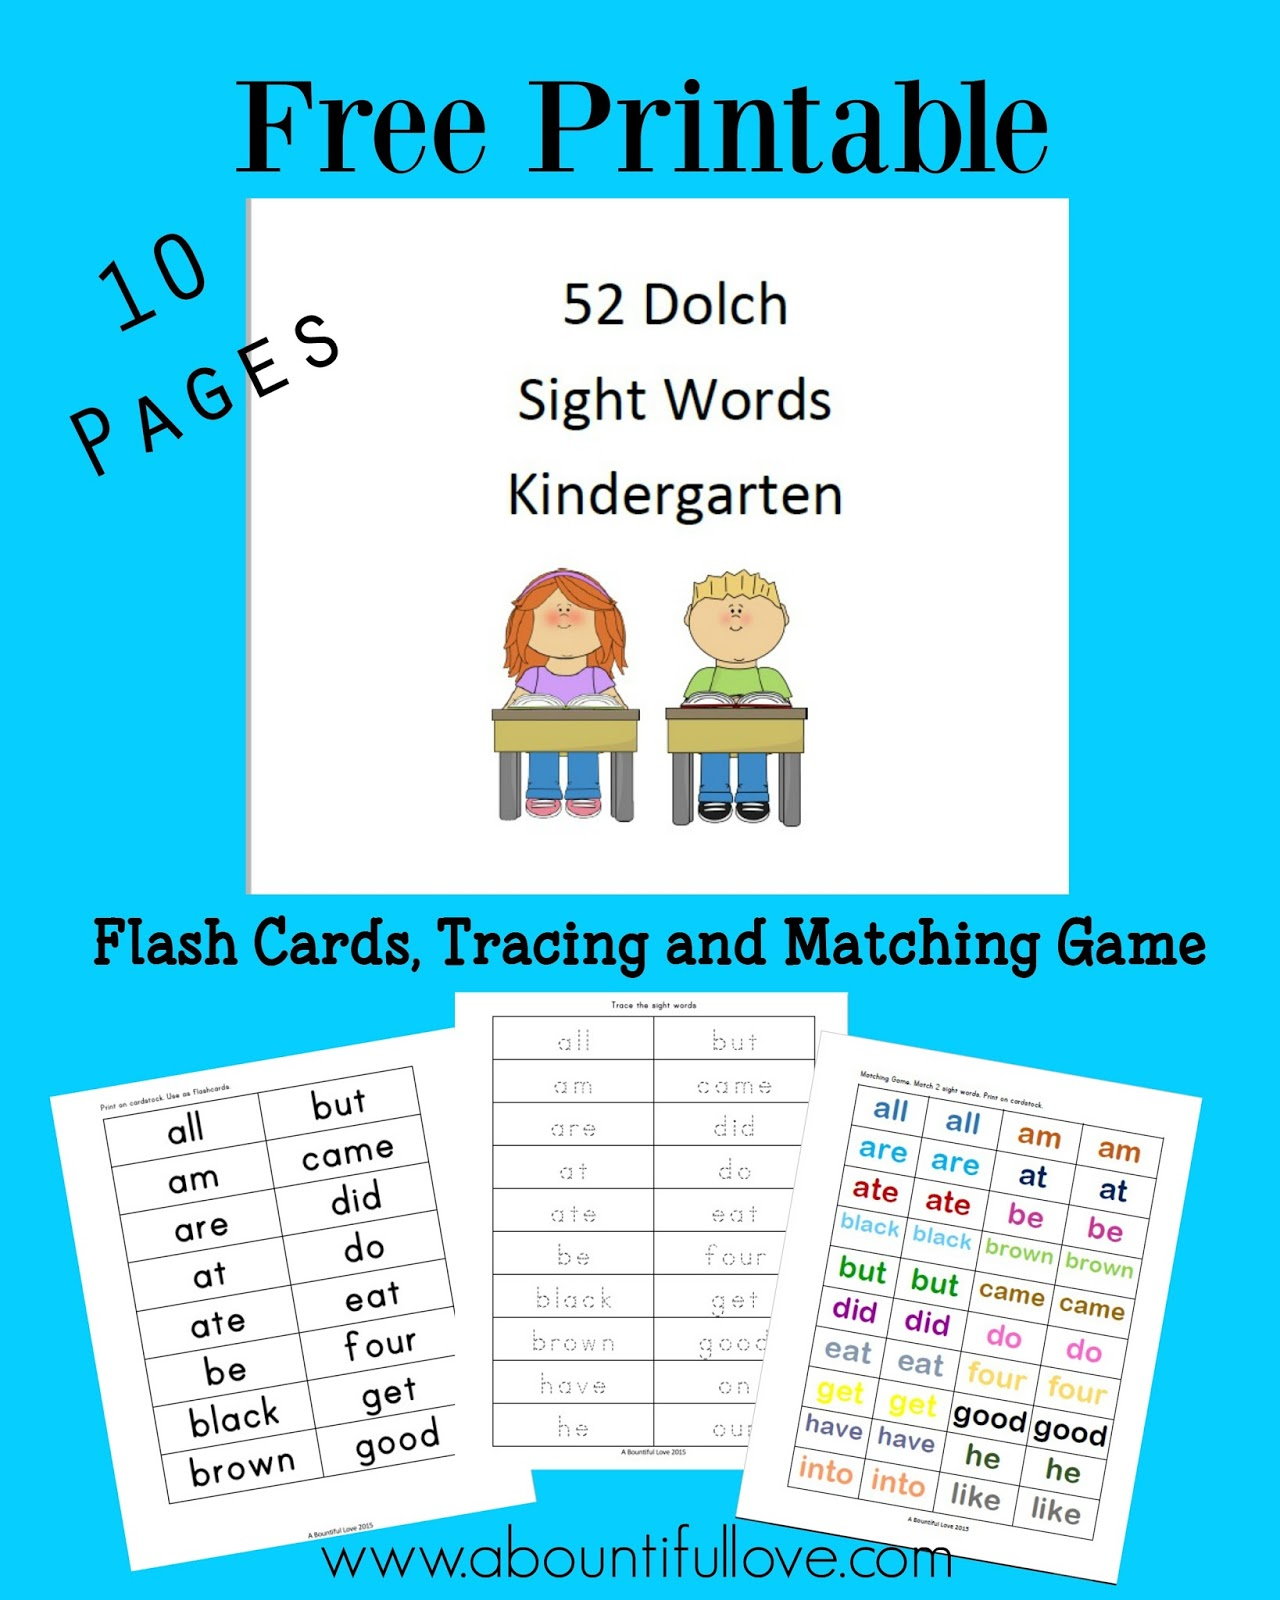 Slobbery image with regard to sight words printable